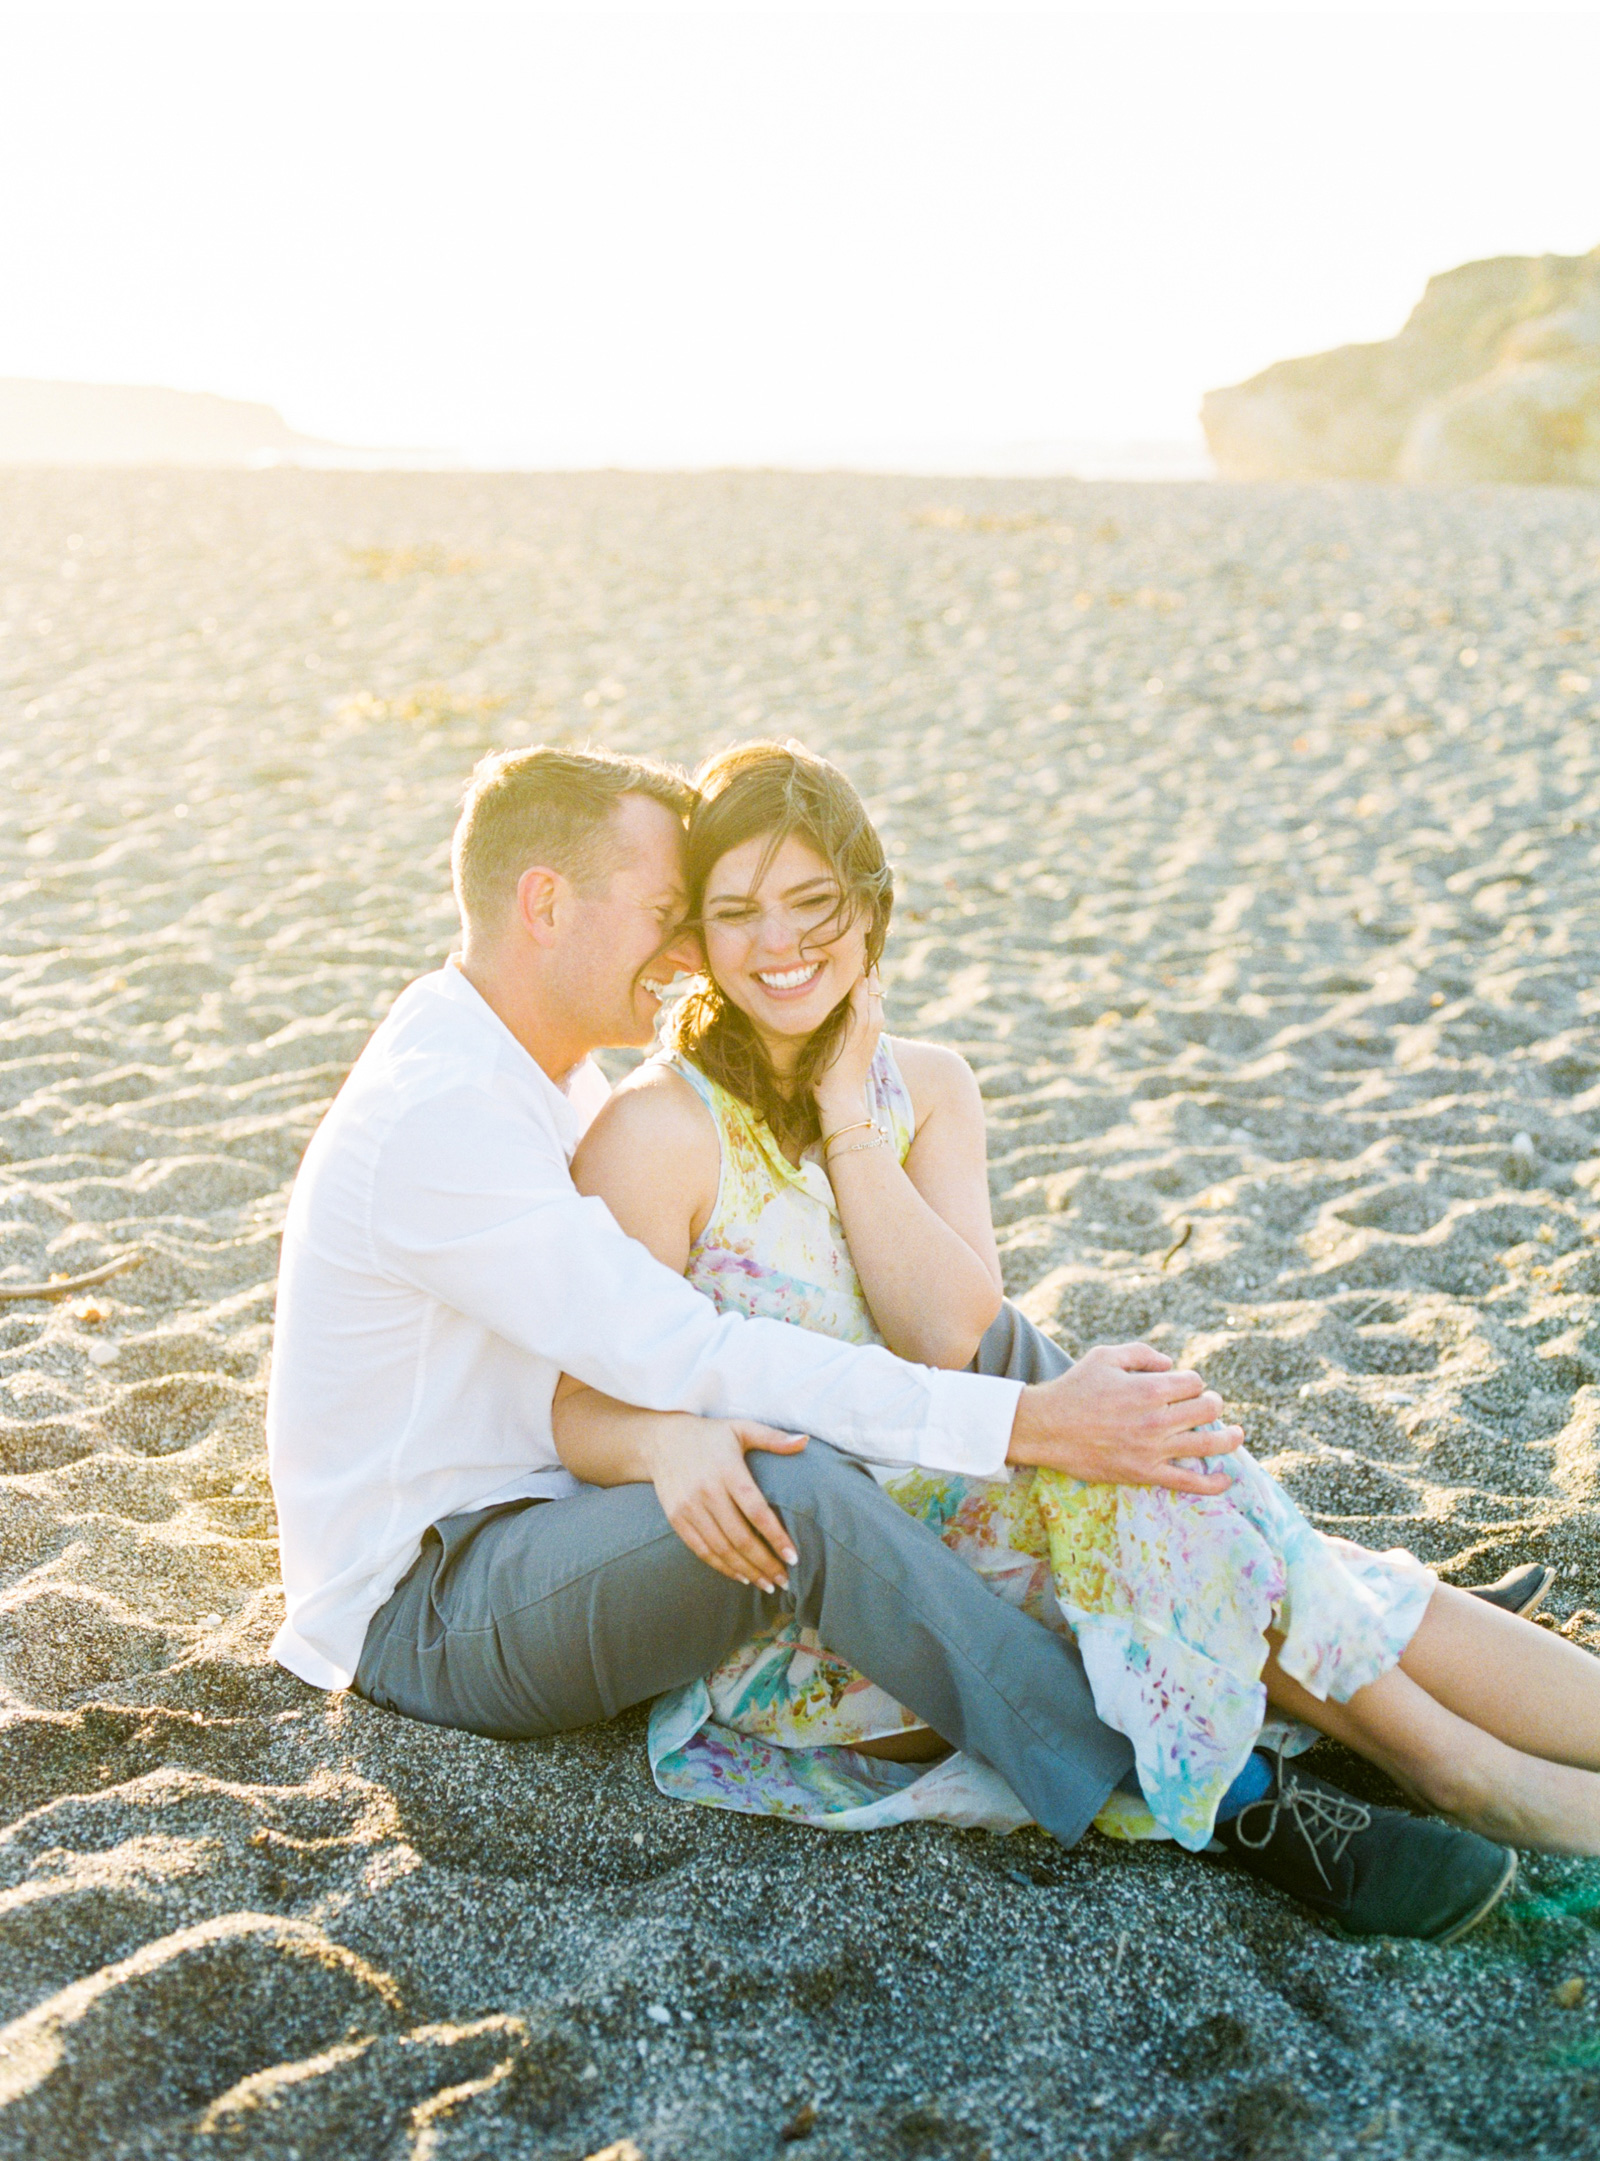 Natalie-Schutt-Photography-Malibu-Engagements-Malibu-Wedding-Beachside-Wedding-Fine-Art-Wedding-Photography-Southern-California-Brides_13.jpg